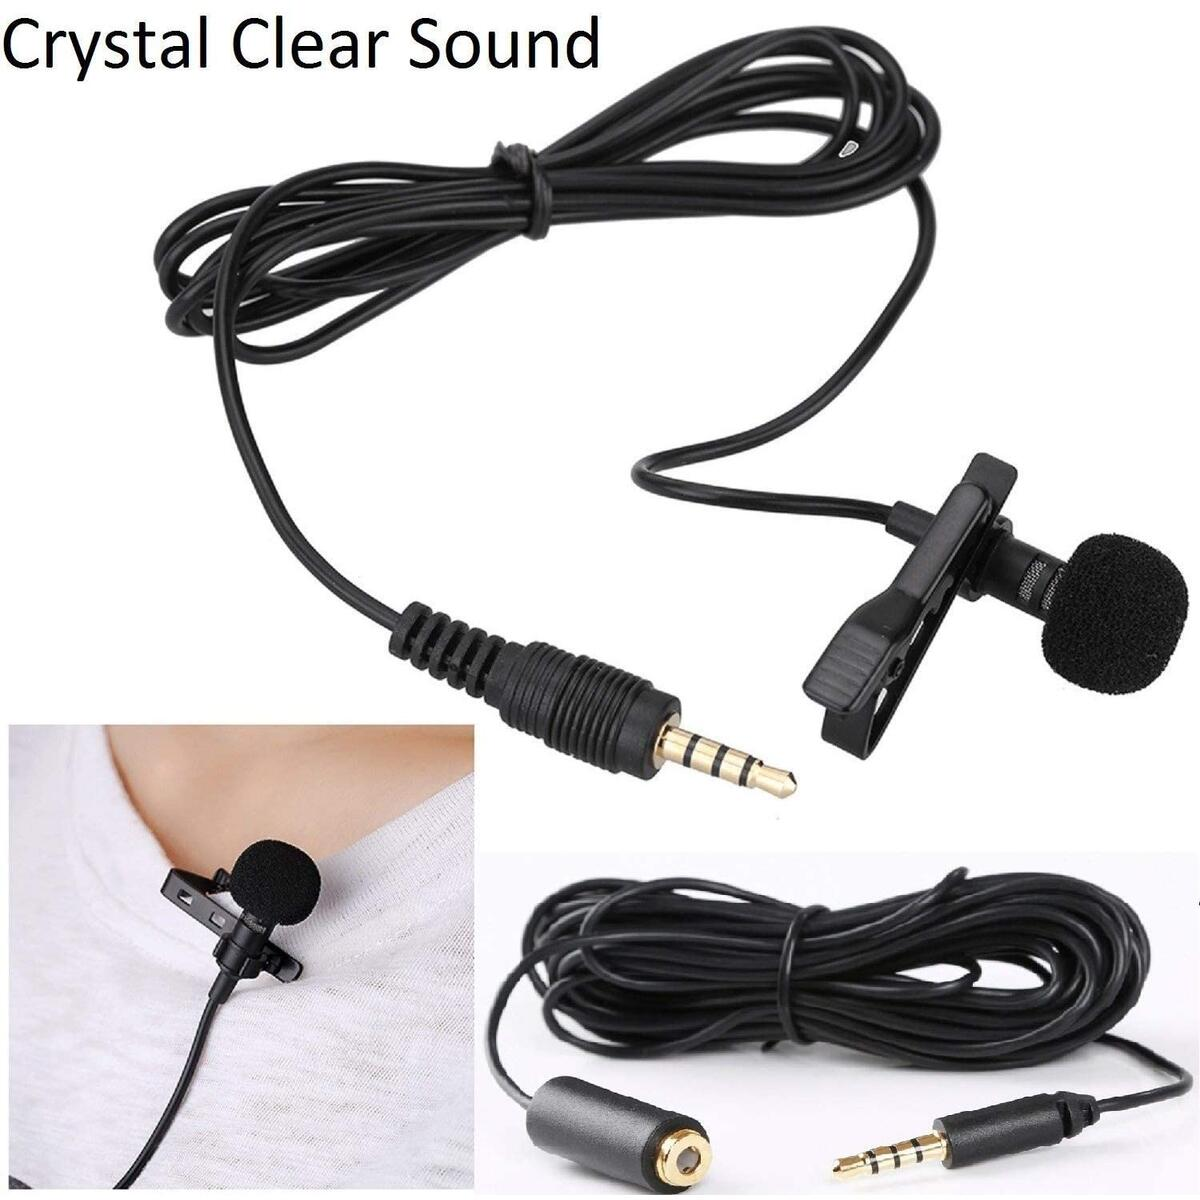 Socialite Professional Grade Studio Quality Clip-on Lavalier Lapel Omnidirectional Condenser Microphone for Apple iPhone, Ipad, Samsung, Android, Windows Smartphones, Tablets w/ 3.5mm Extension Cable